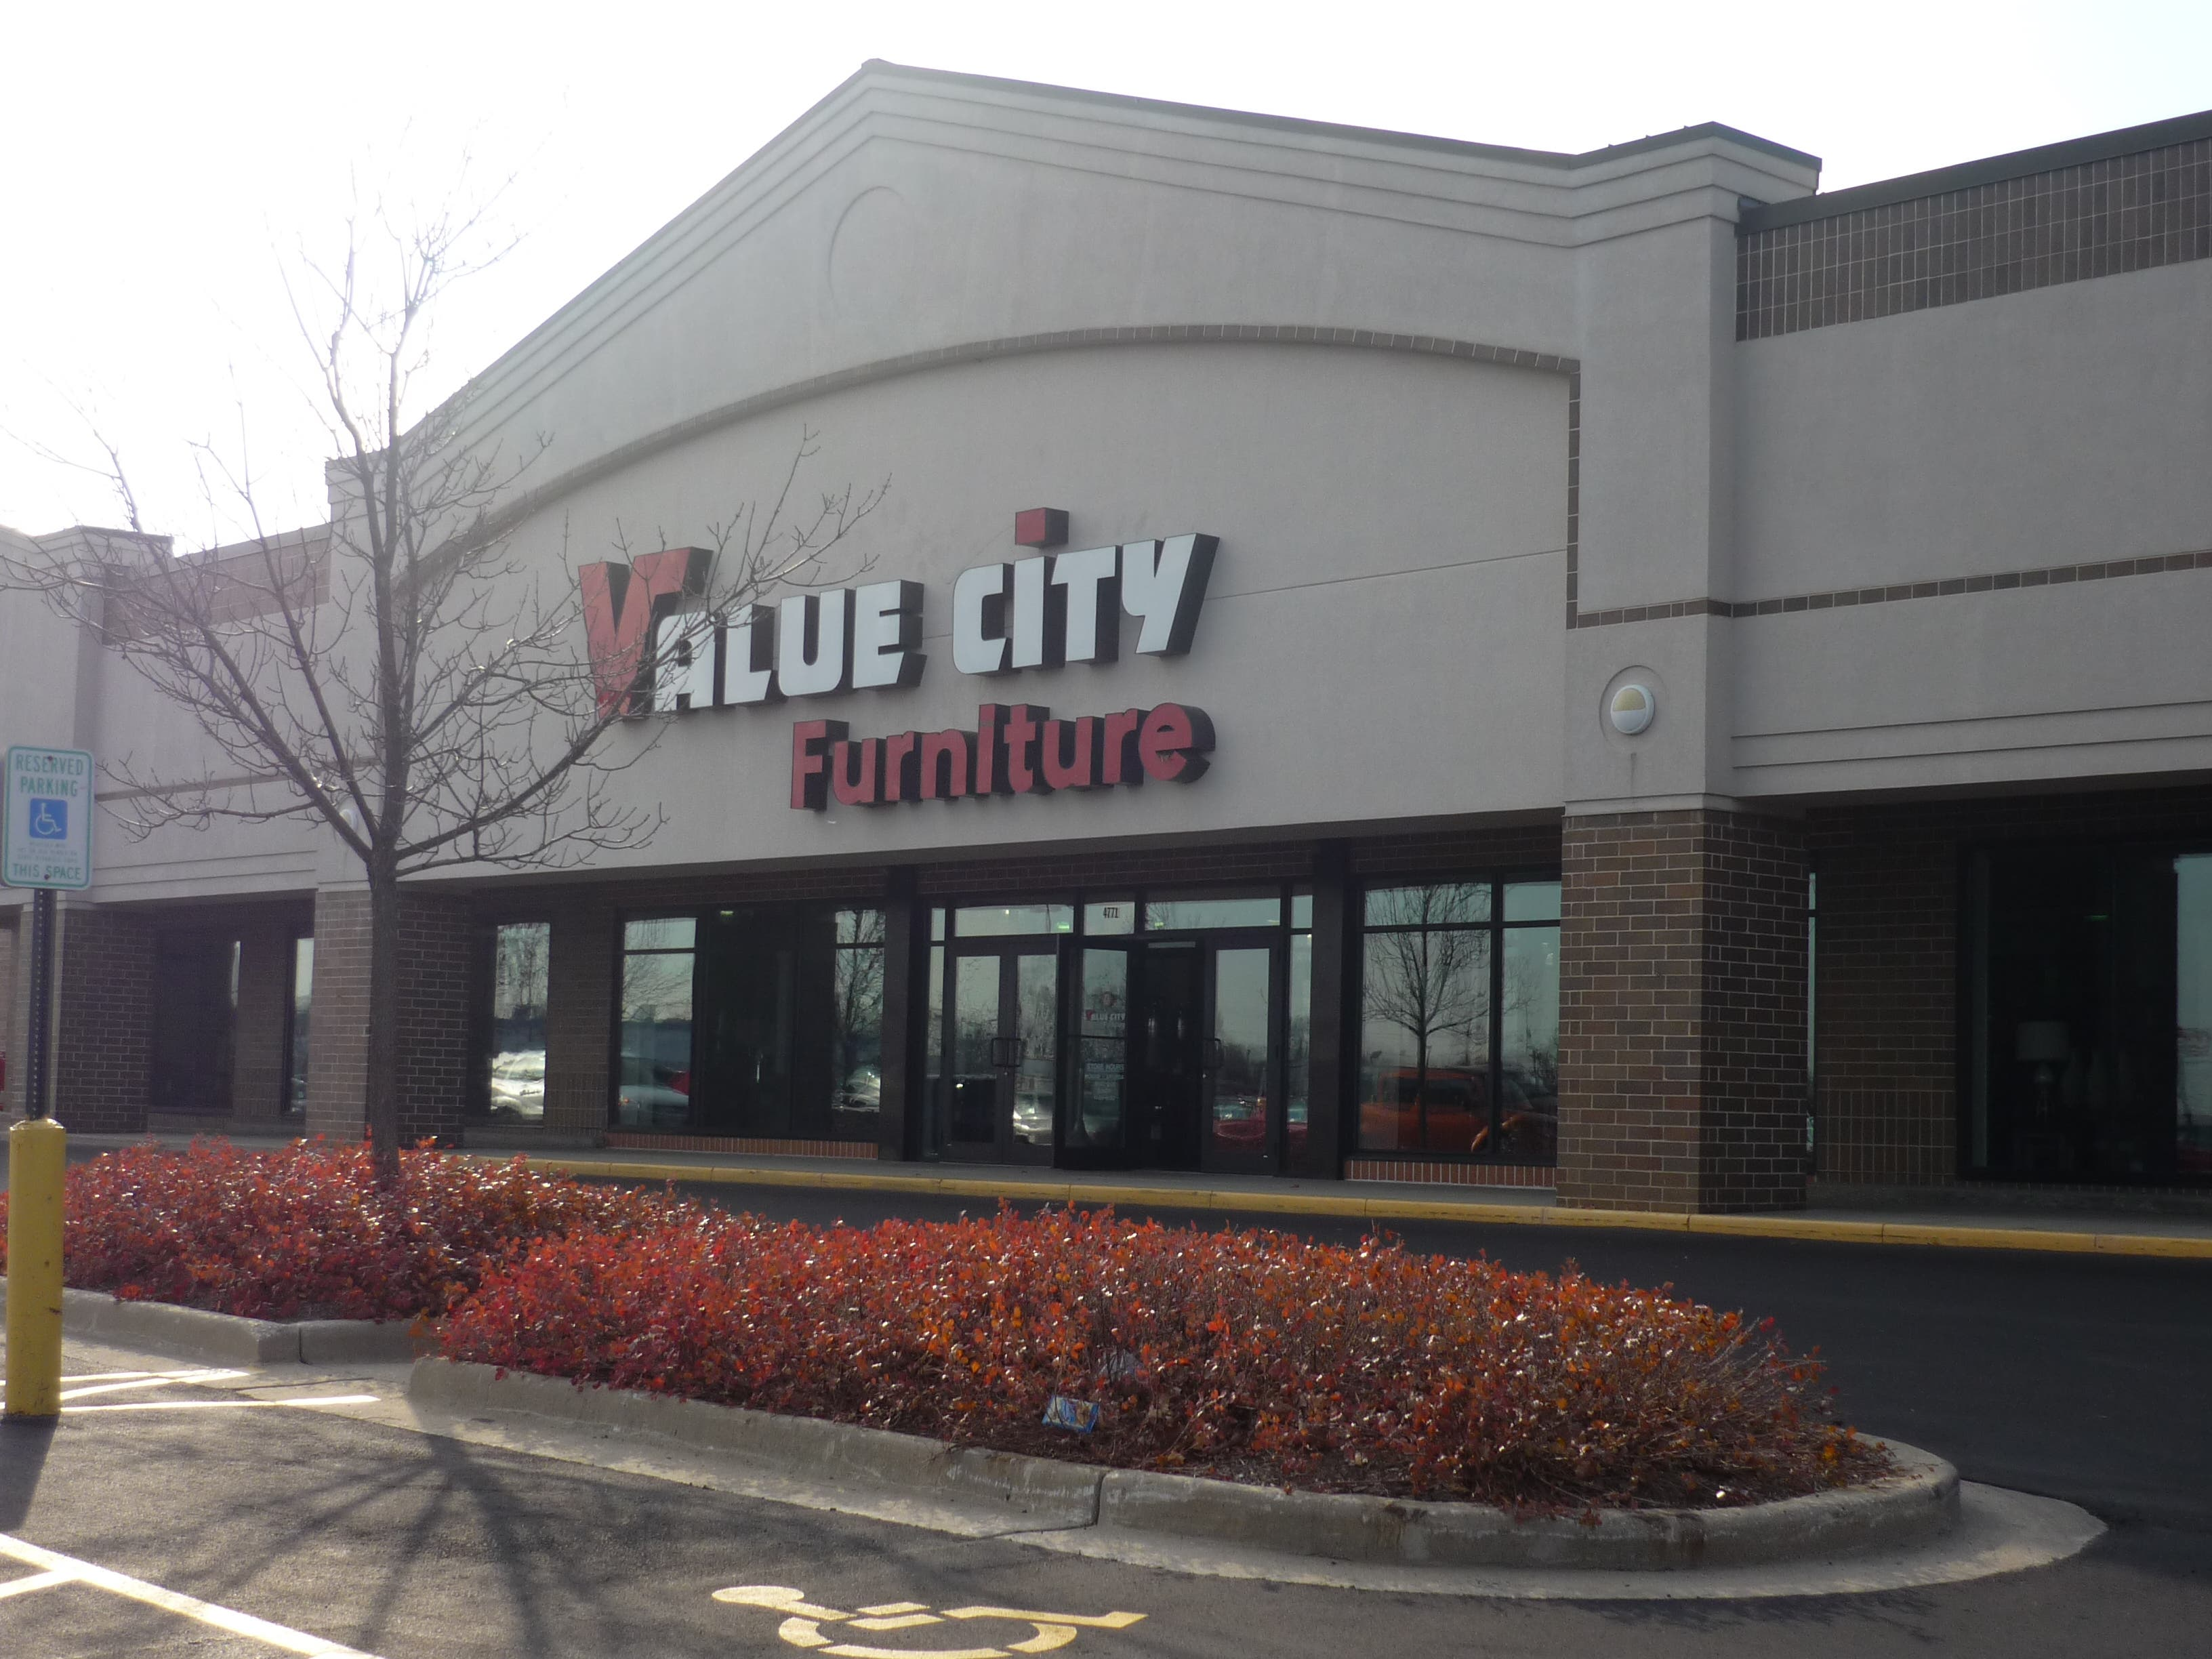 Report Value City Furniture To Be Replaced By Ashley Furniture